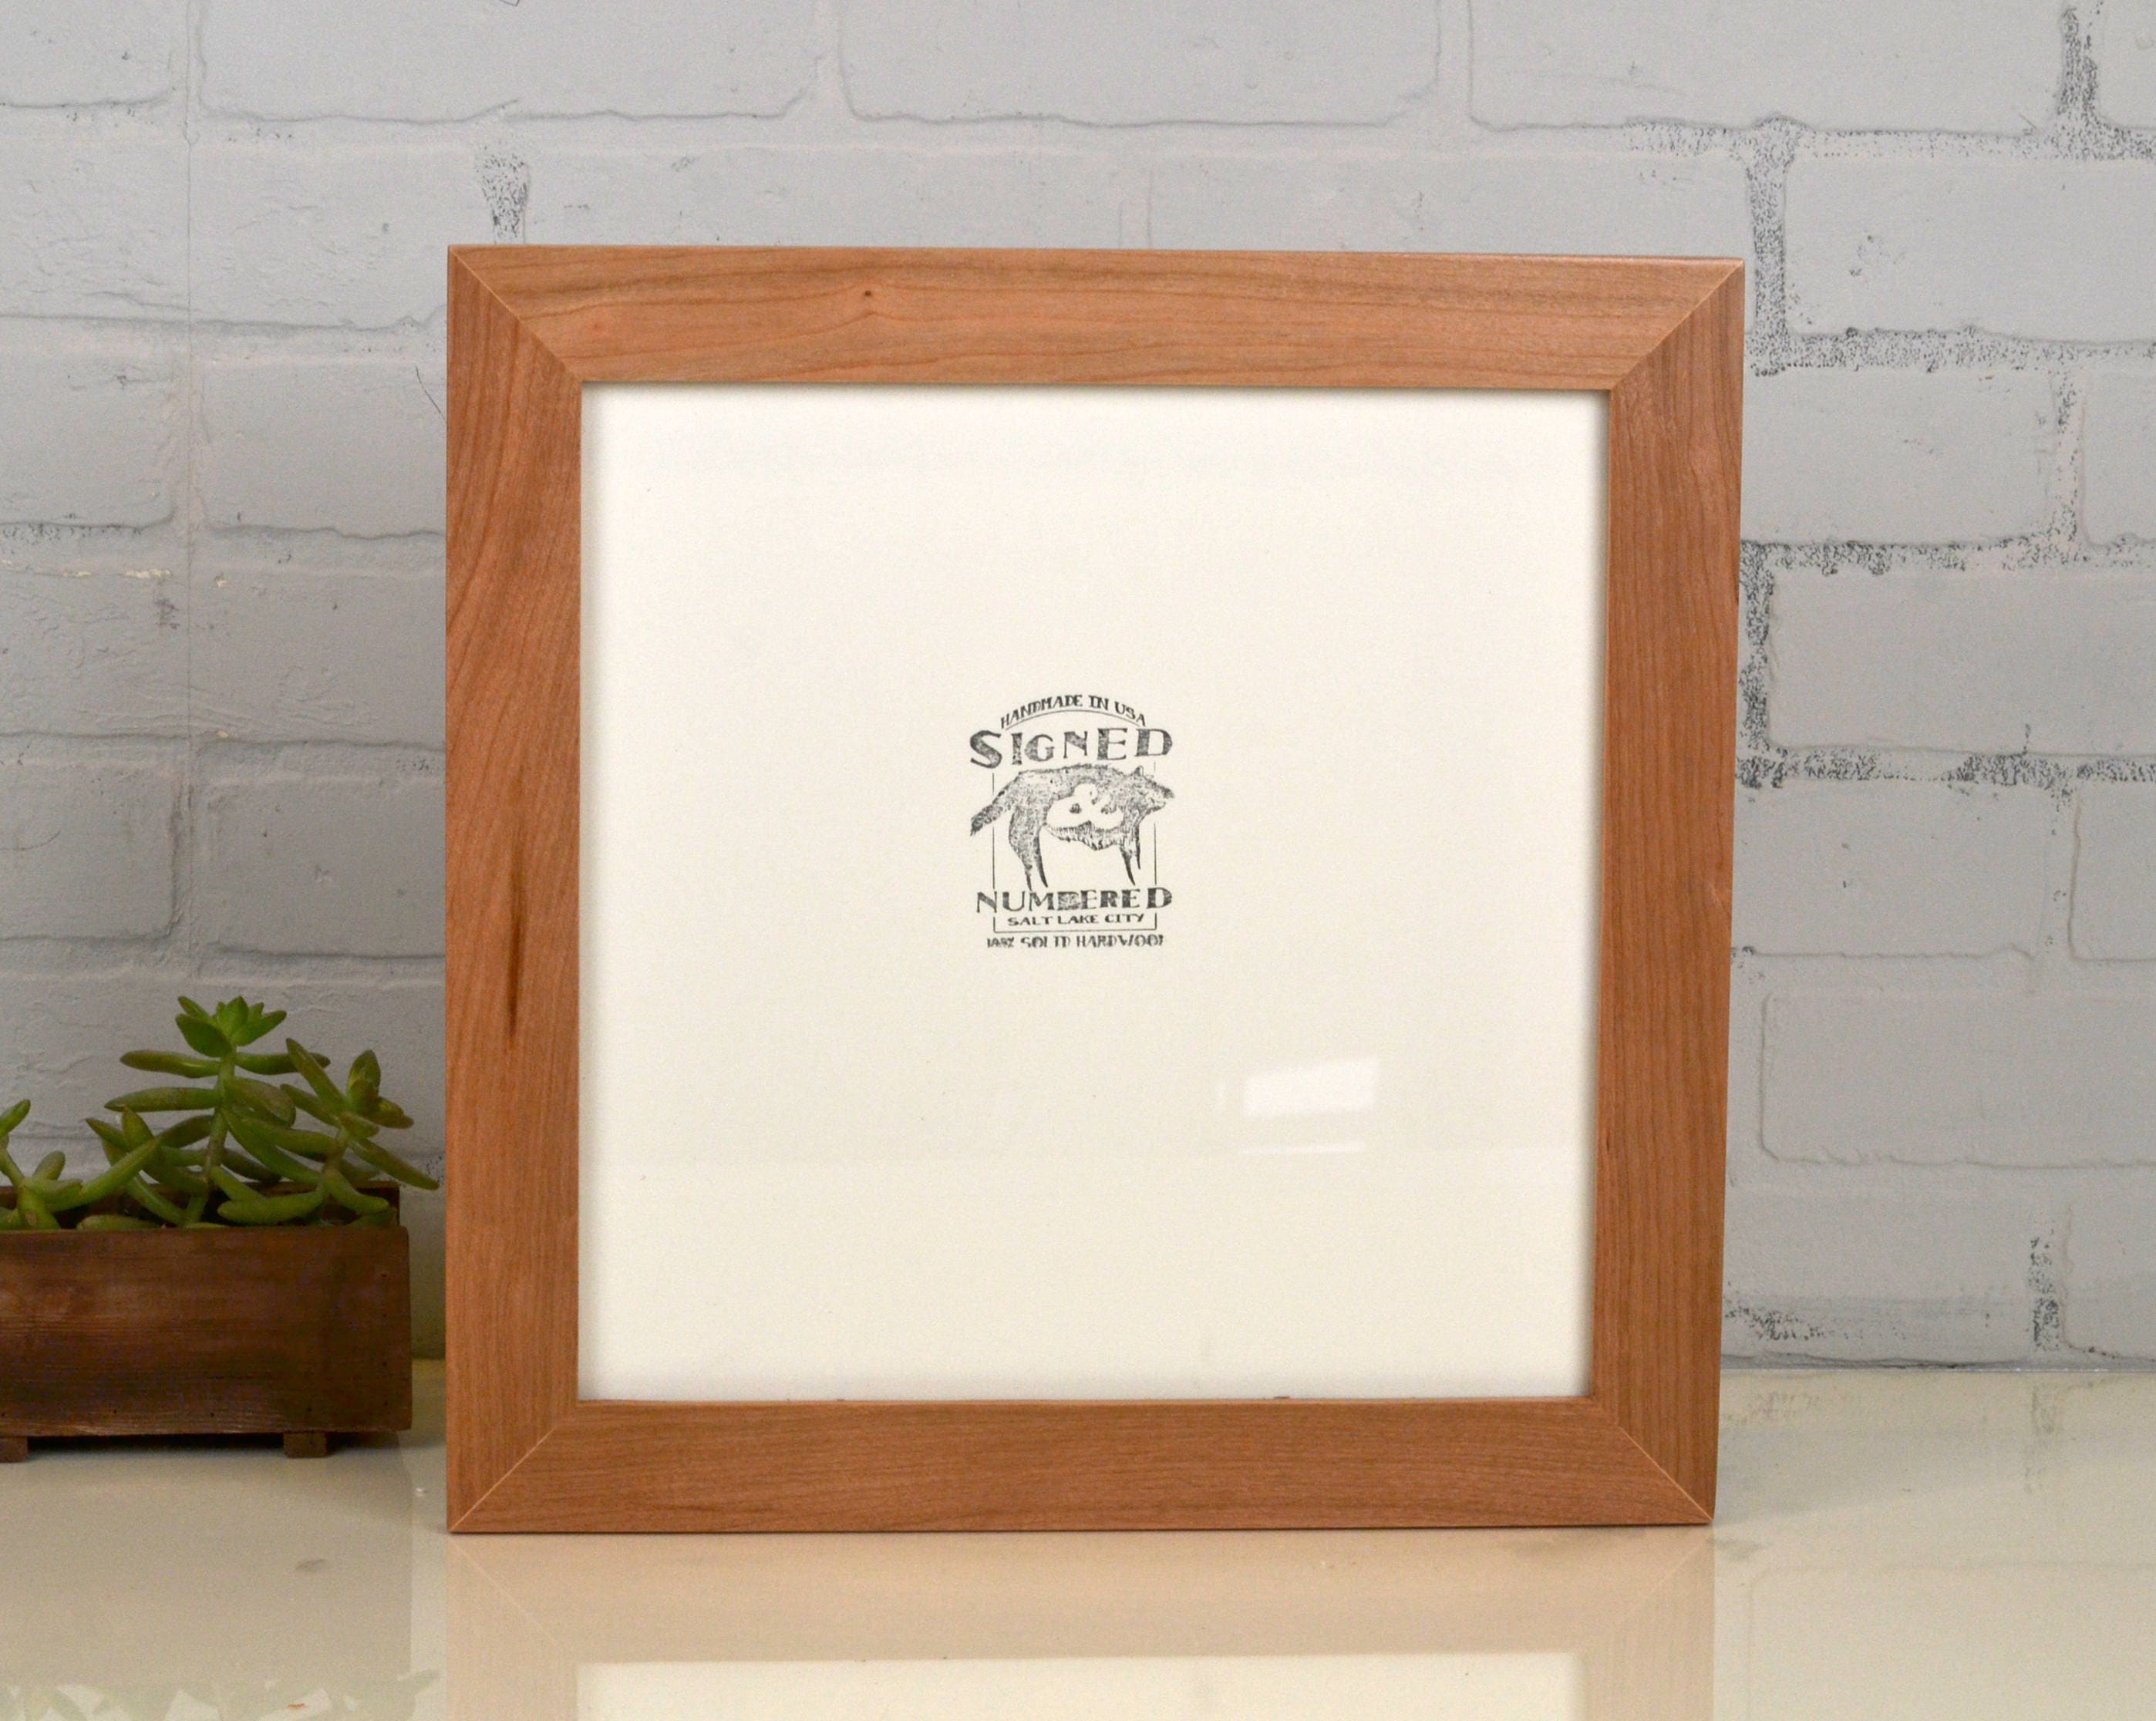 12x12 Square Picture Frame in 1.5 inch Wide Natural Cherry Wood ...